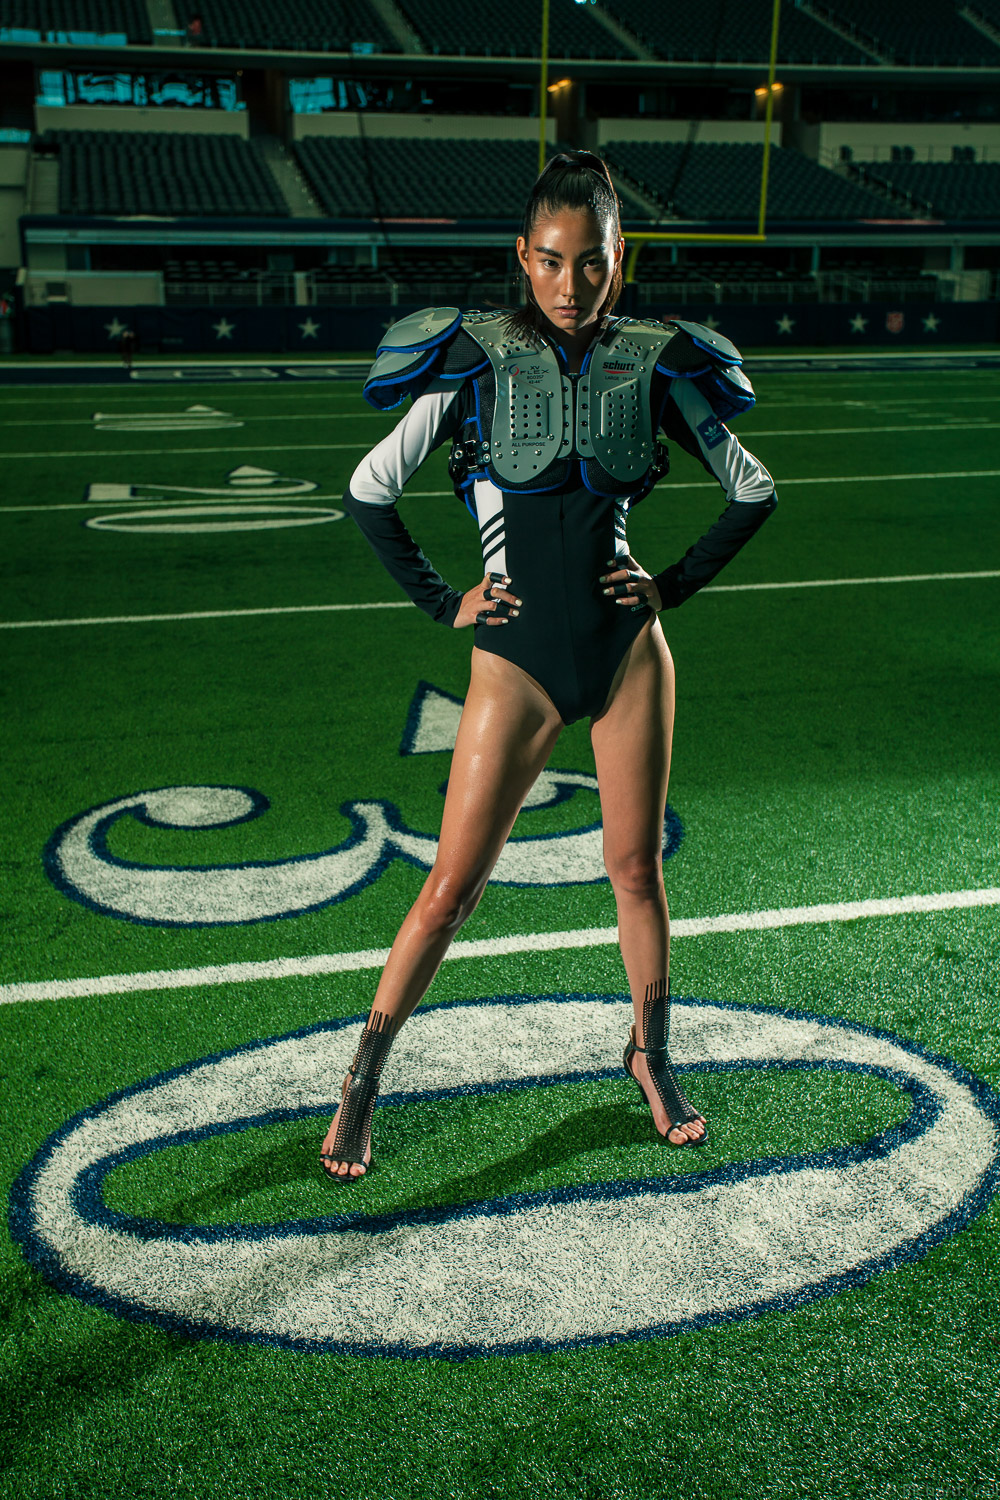 Model in Football pads